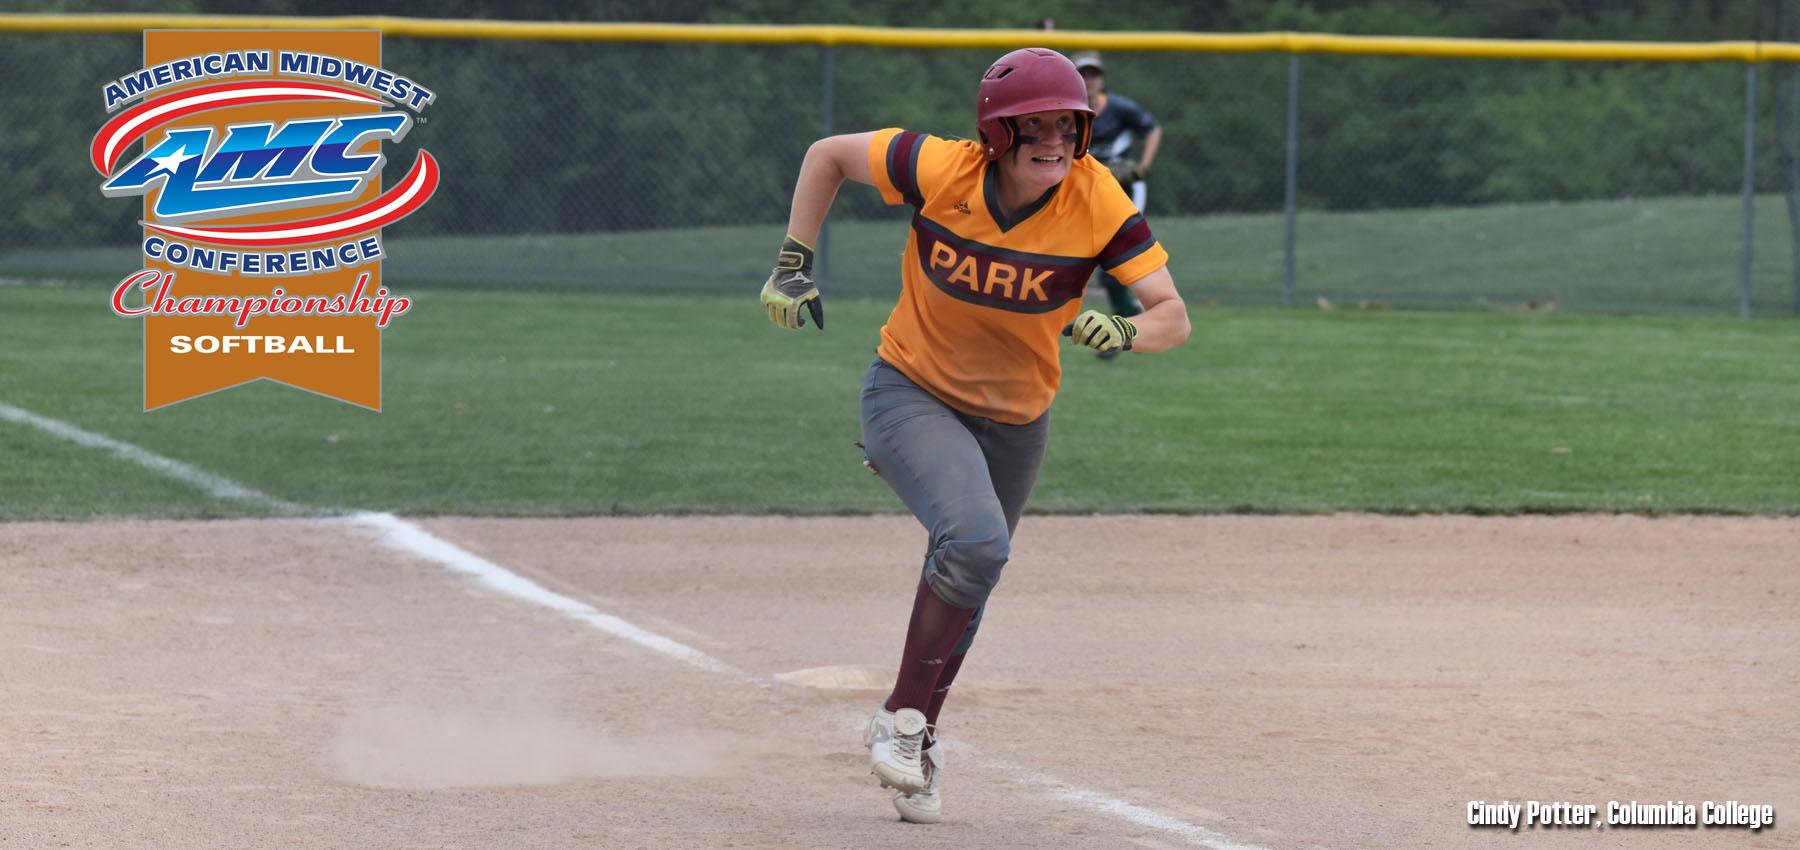 Pirates Fall to Mustangs in AMC Semifinals | Park University